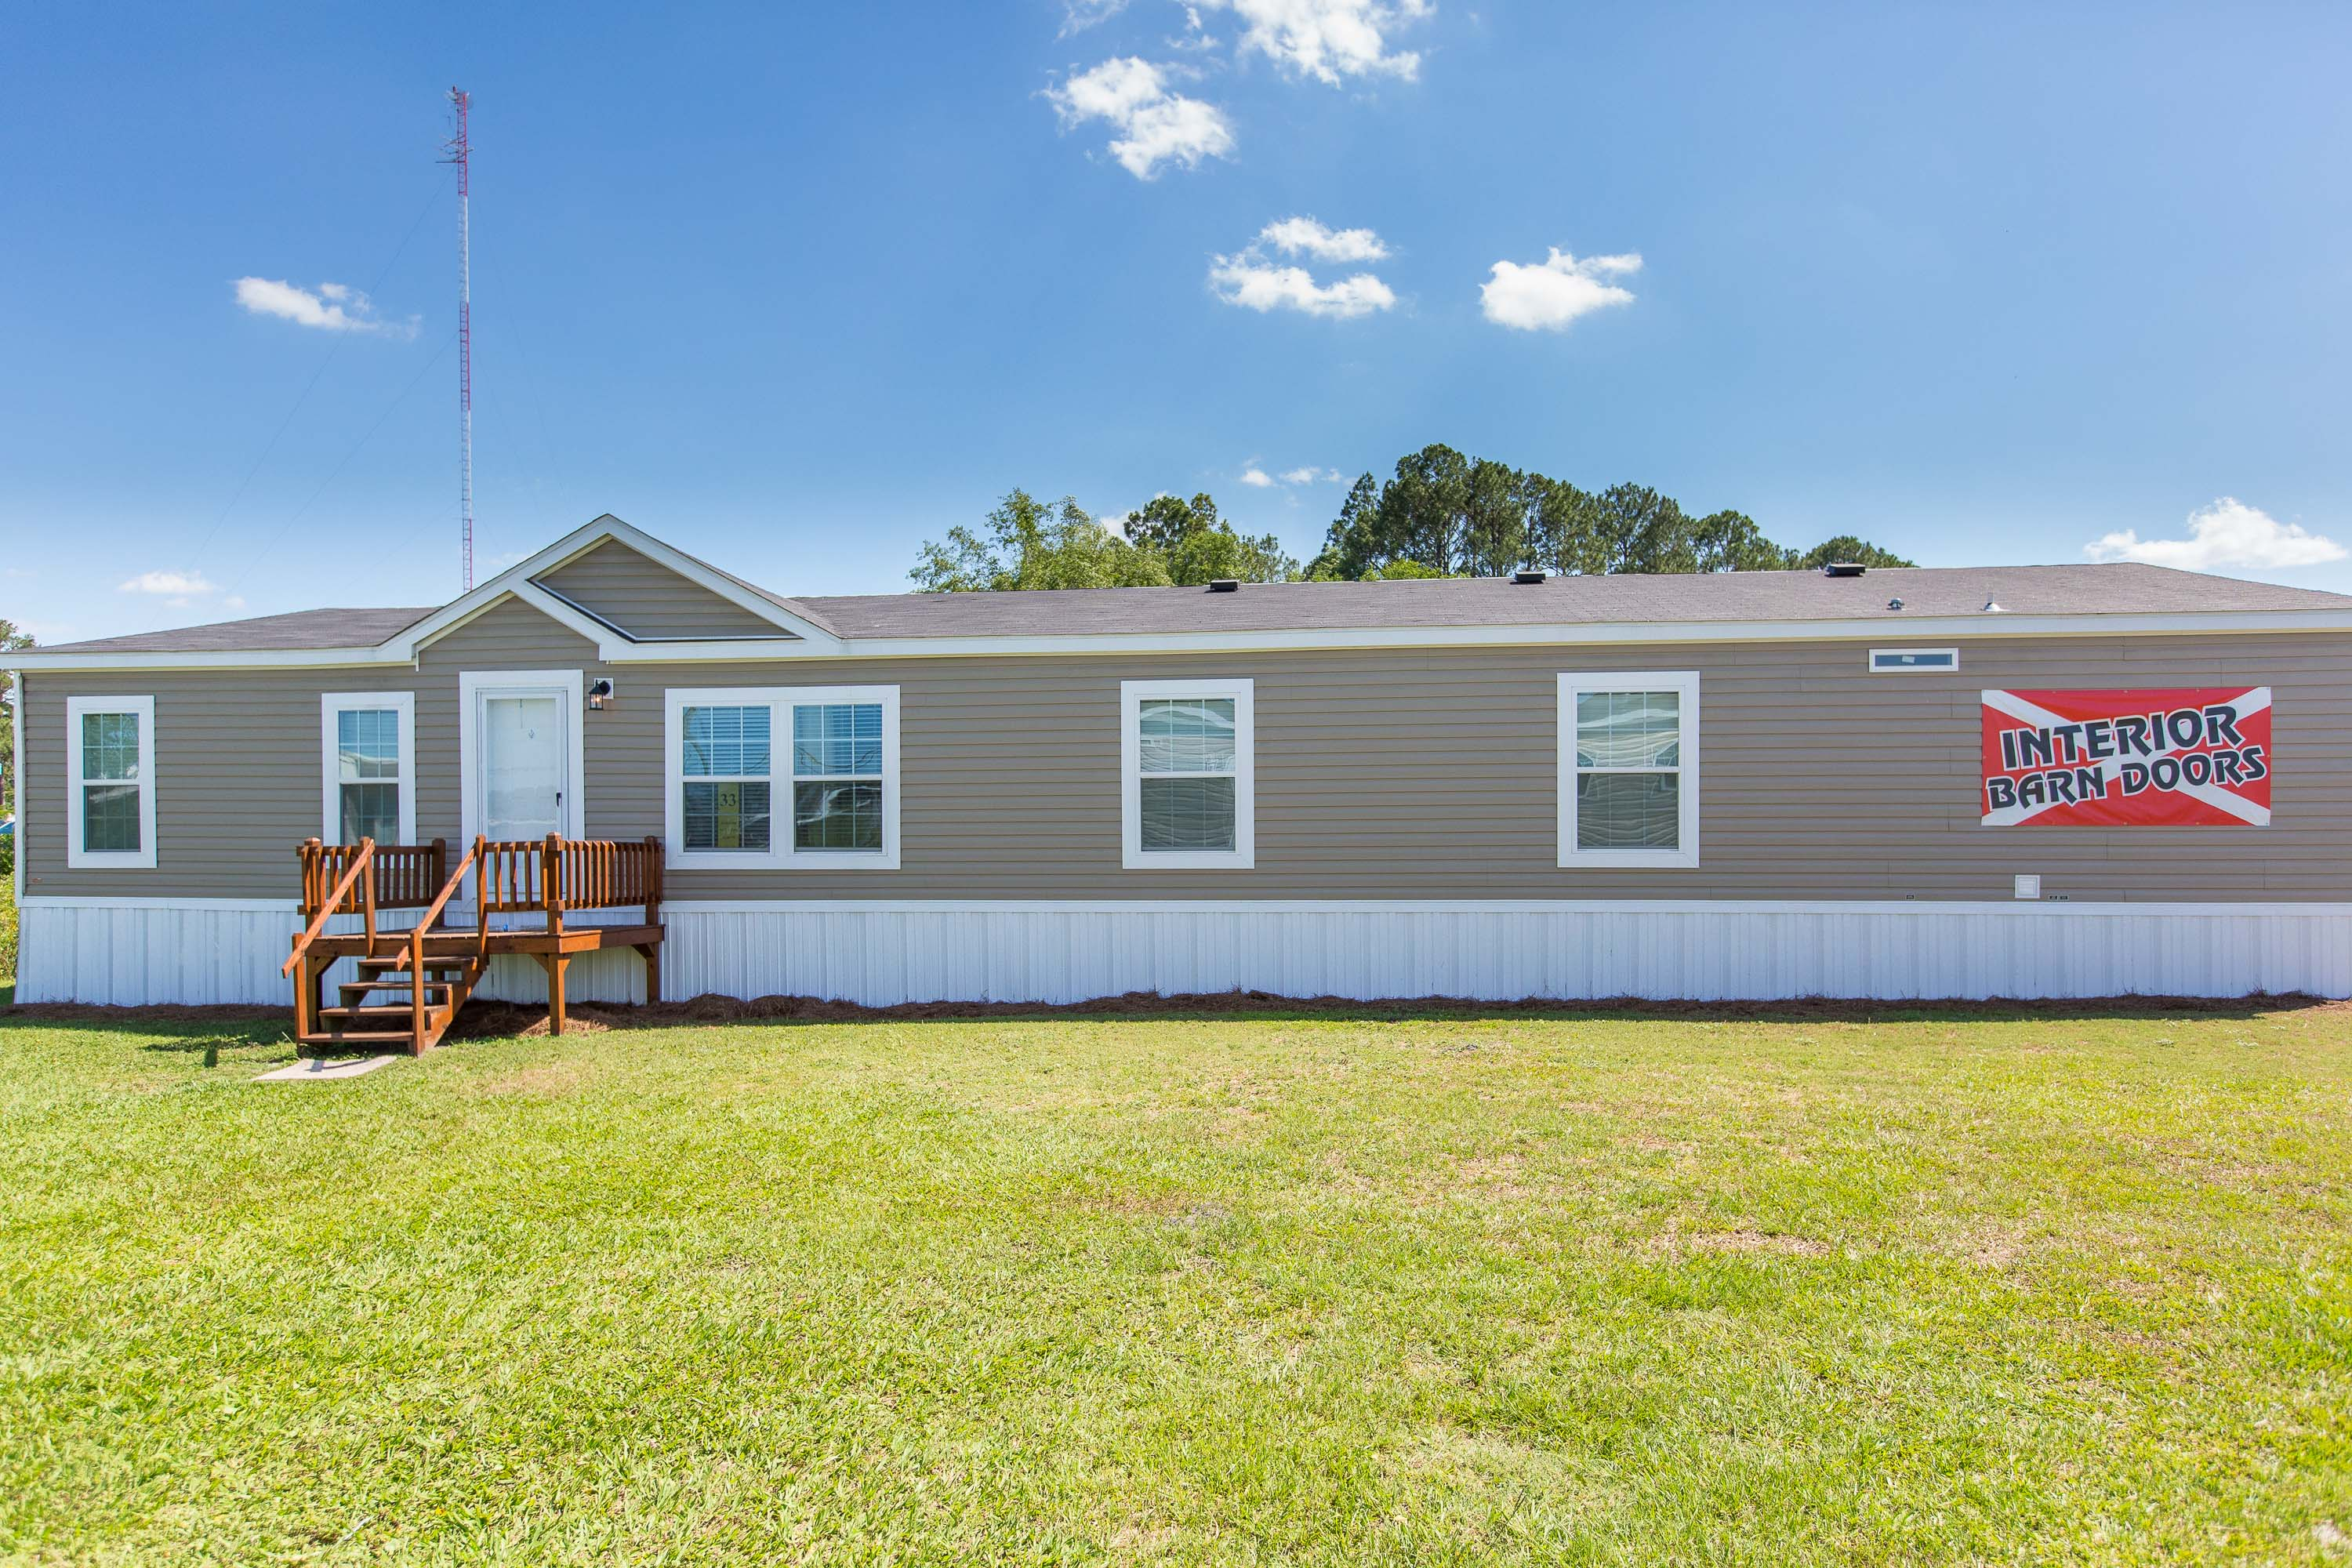 Wayne Frier Mobile Homes | Mobile Homes in Pensacola Fl | Wayne Frier Home Center